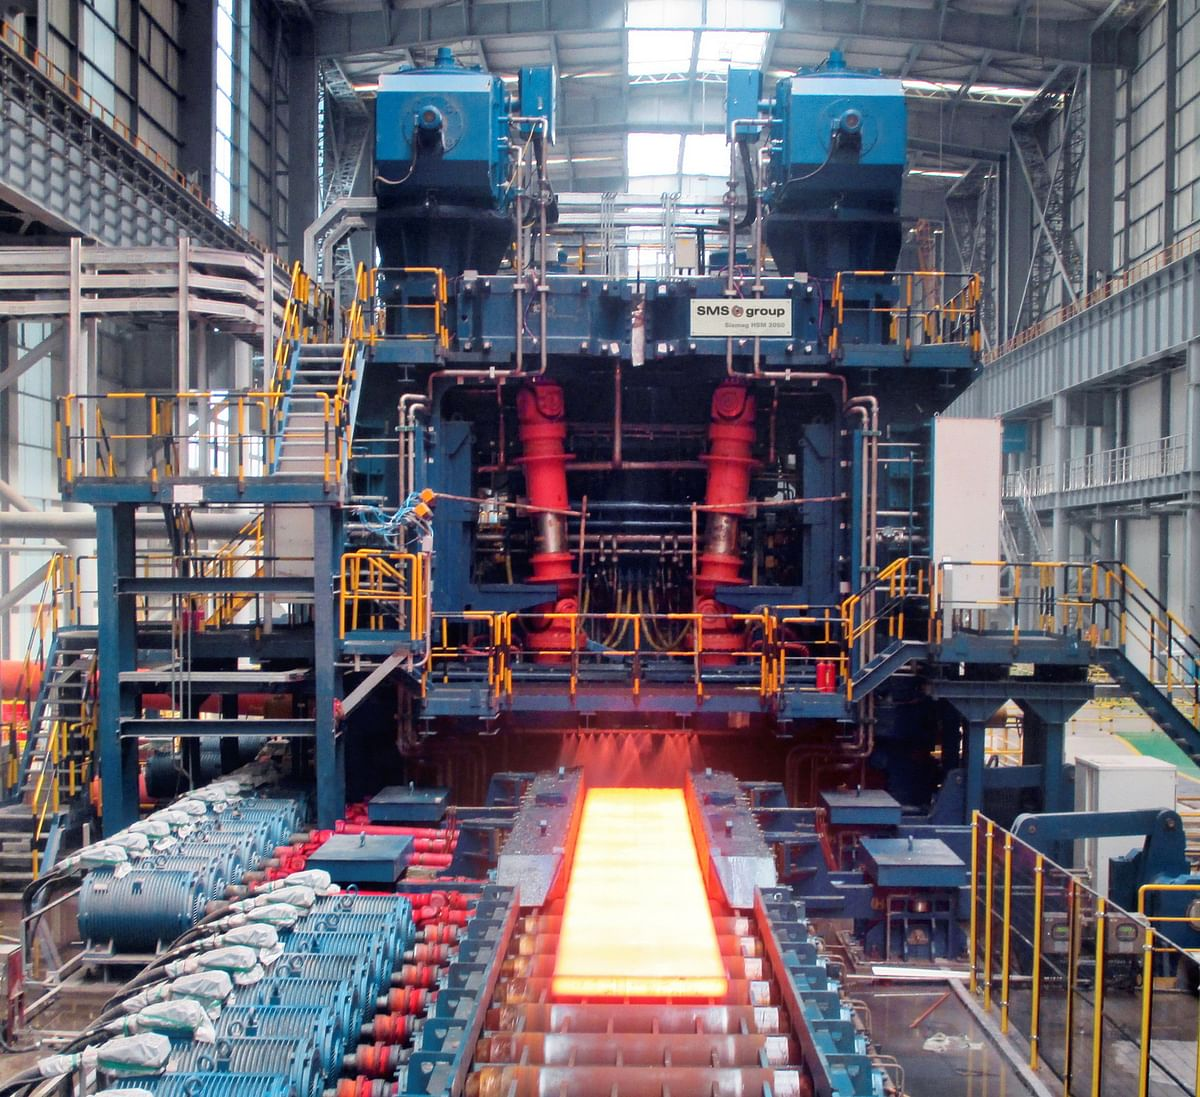 HBIS Laoting Commissions Hot Strip Mill Supplied by SMS Group